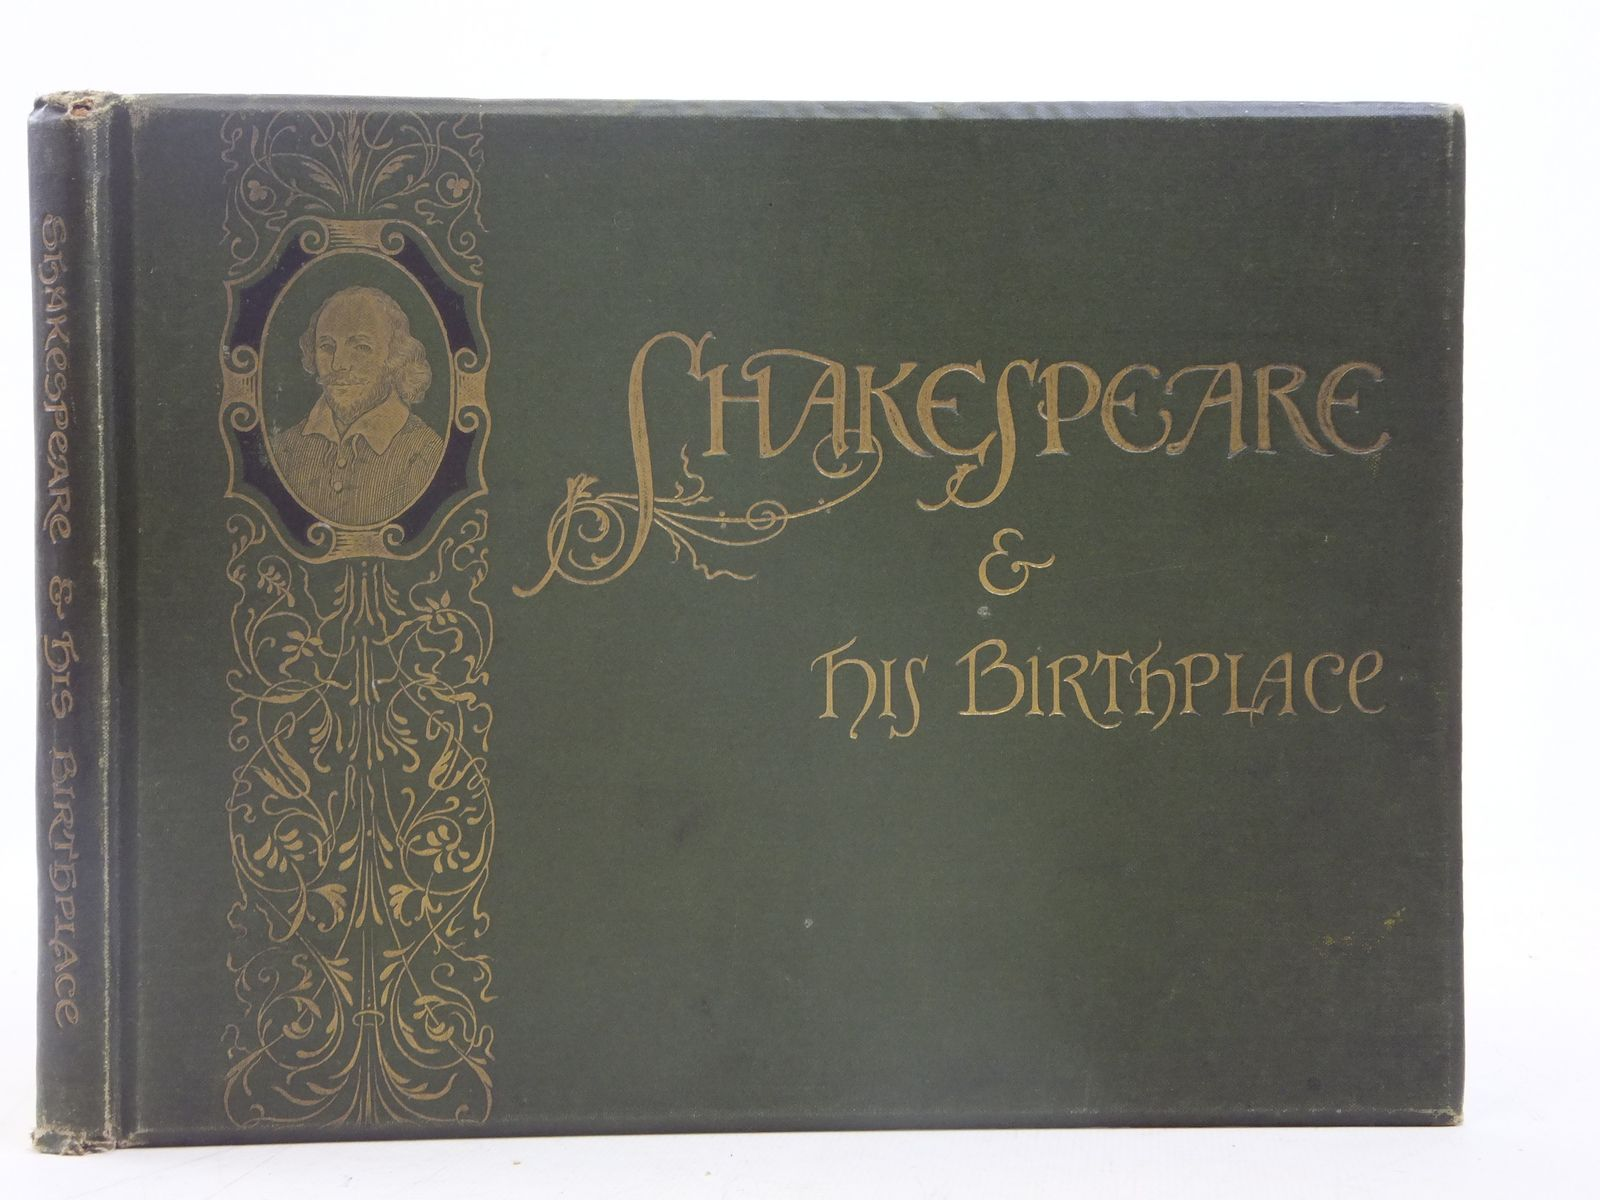 Photo of SHAKESPEARE AND HIS BIRTHPLACE written by Marshall, Emma published by Ernest Nister, E.P. Dutton & Co. (STOCK CODE: 1810858)  for sale by Stella & Rose's Books